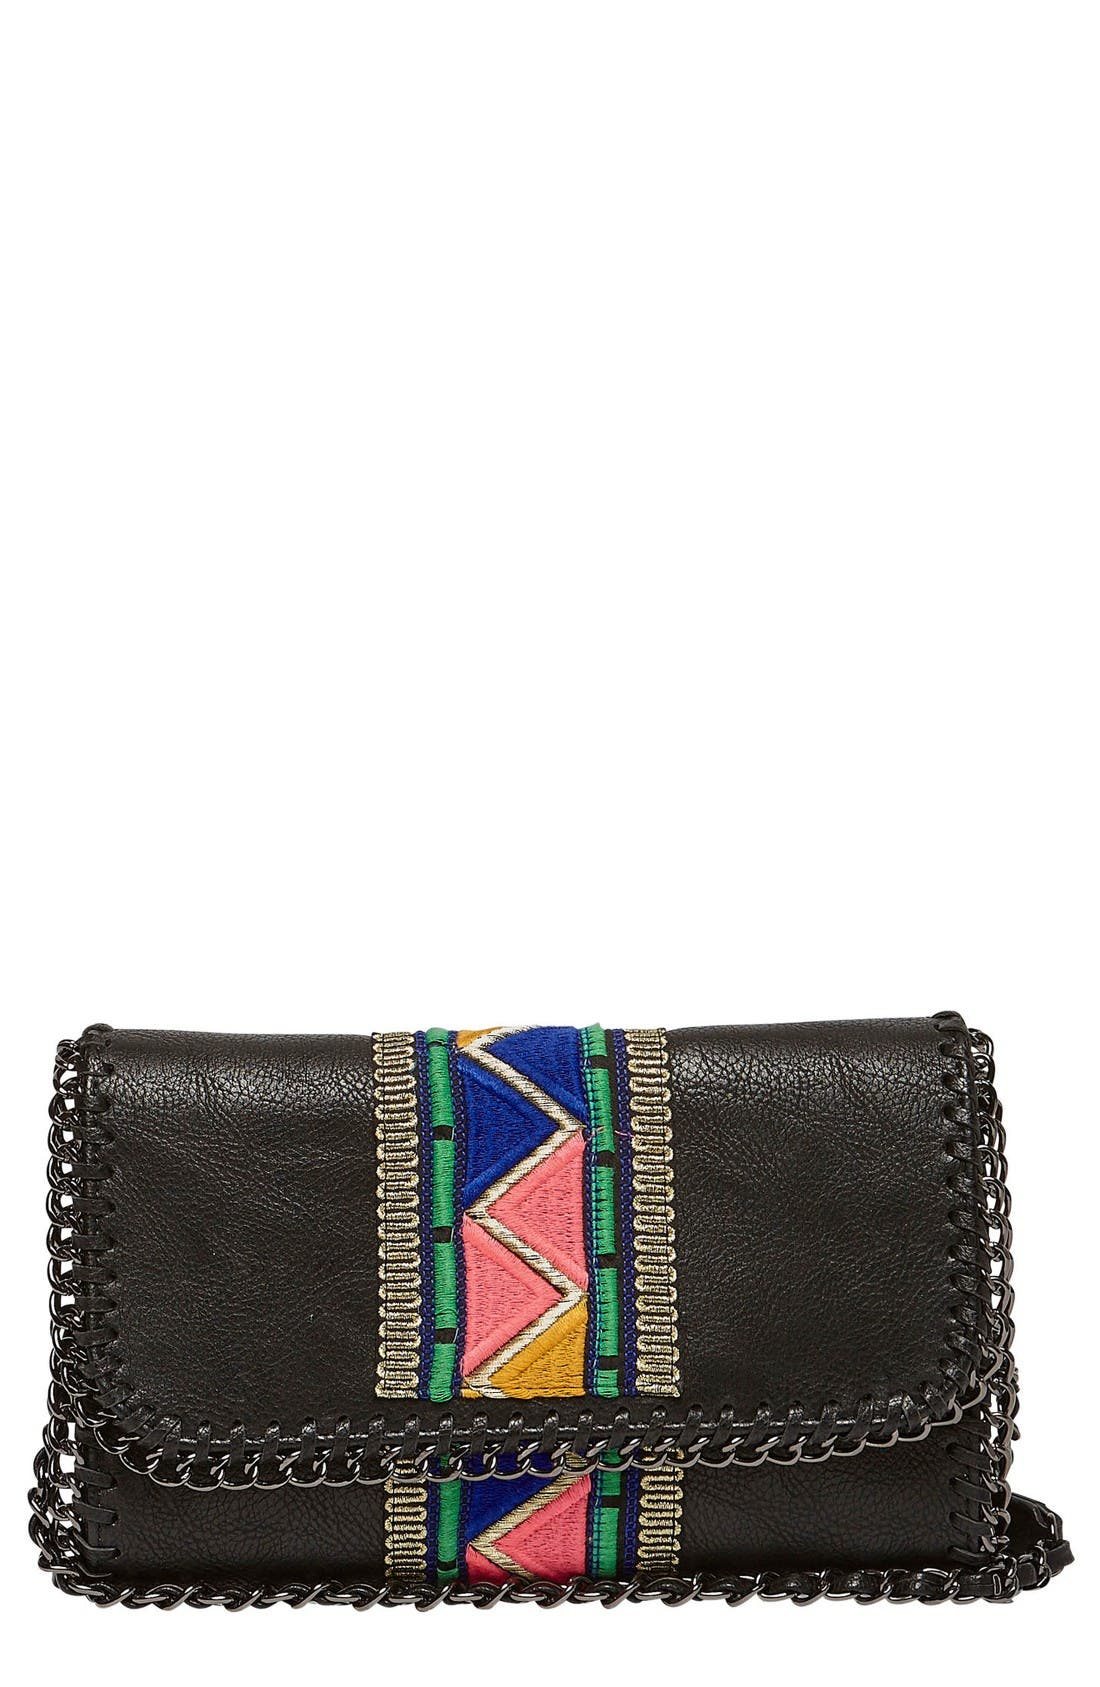 Alternate Image 1 Selected - Urban Originals Cosmic Love Vegan Leather Clutch